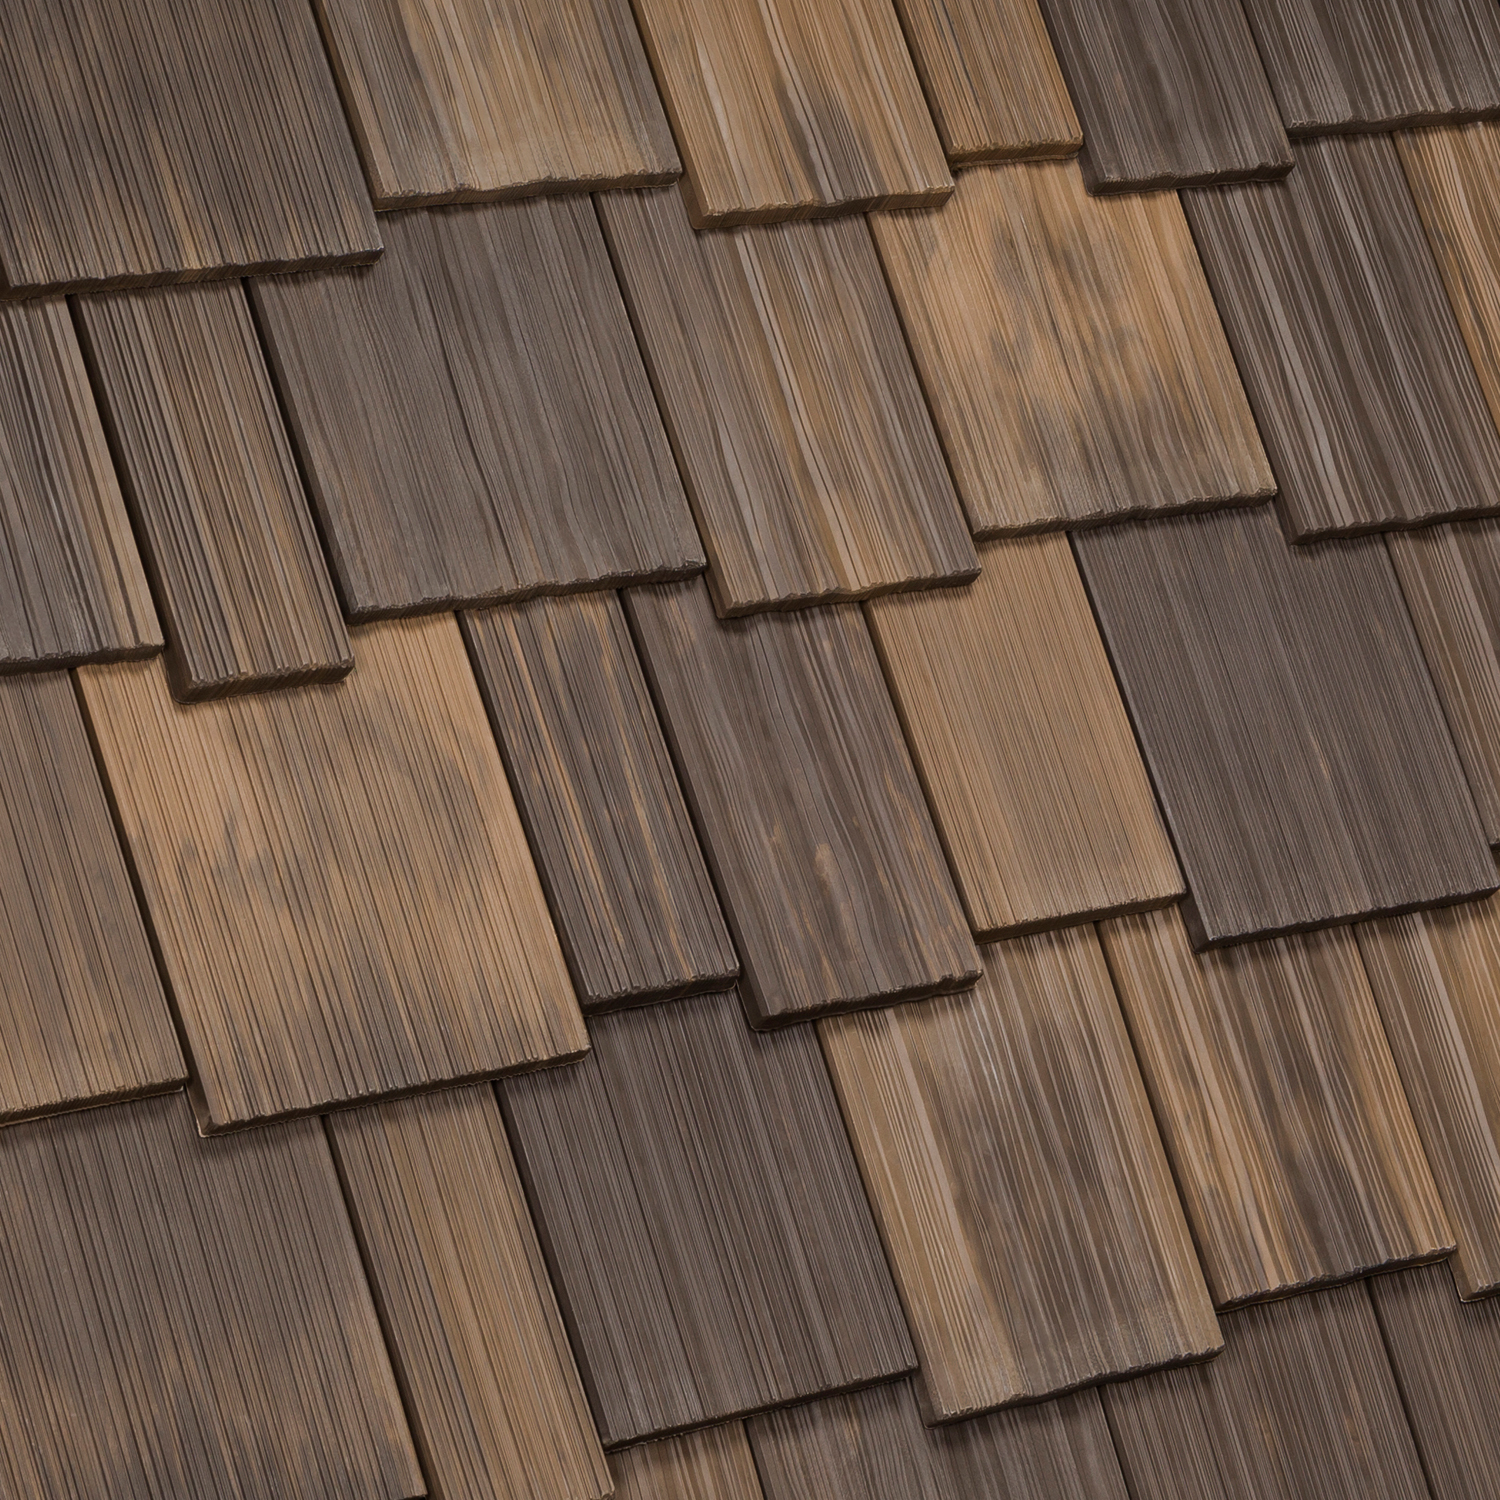 Nature Crafted Collection Introduced by DaVinci Roofscapes®